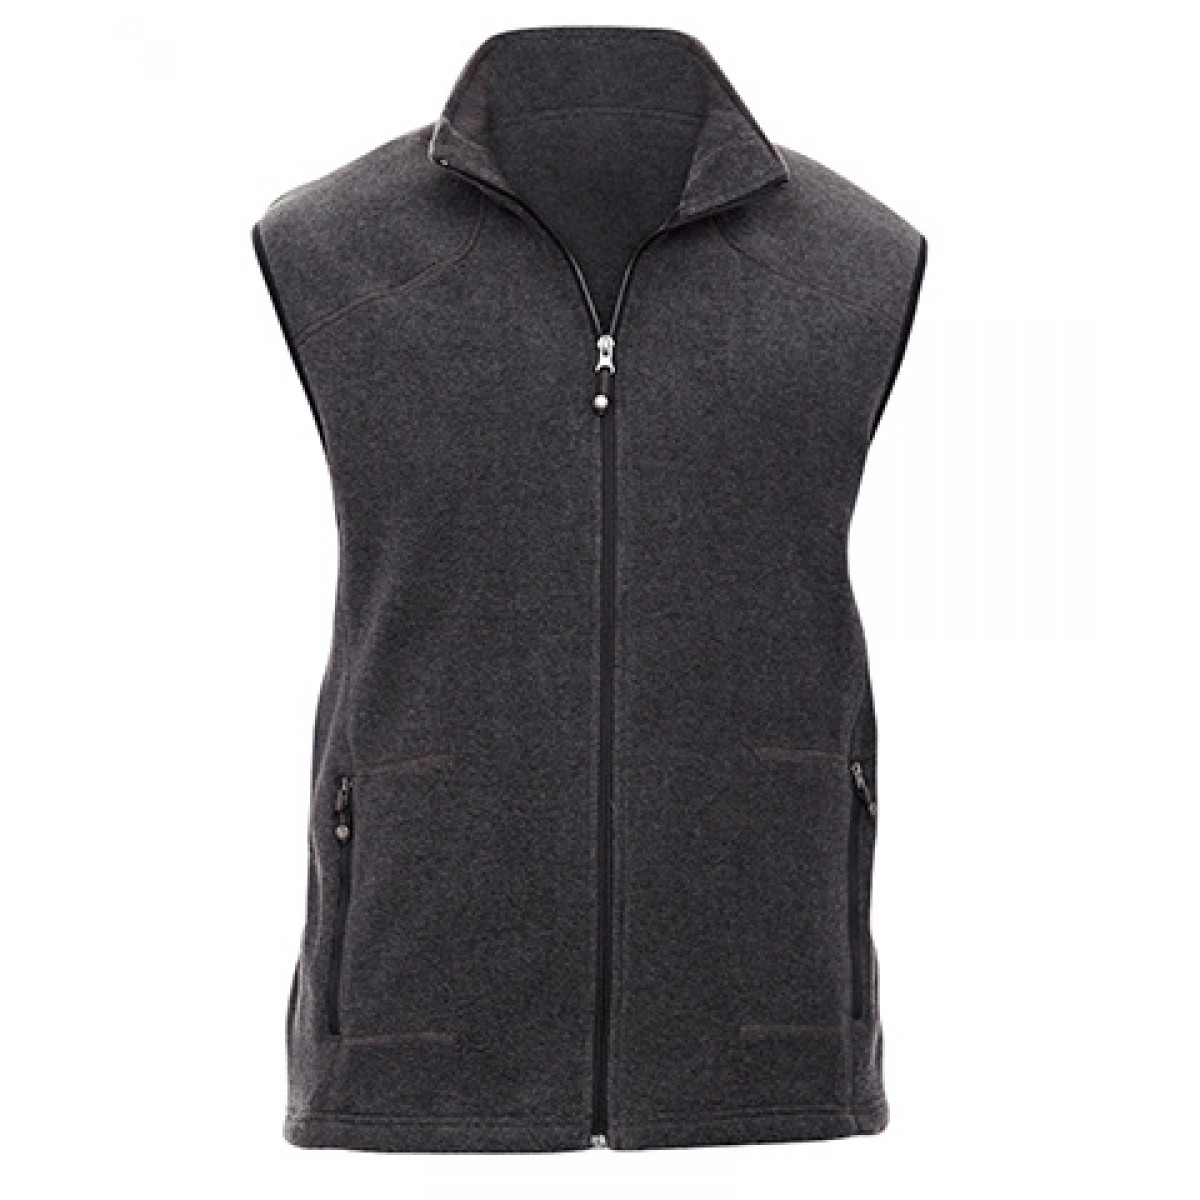 Men's Voyage Fleece Vest-Gray -3XL